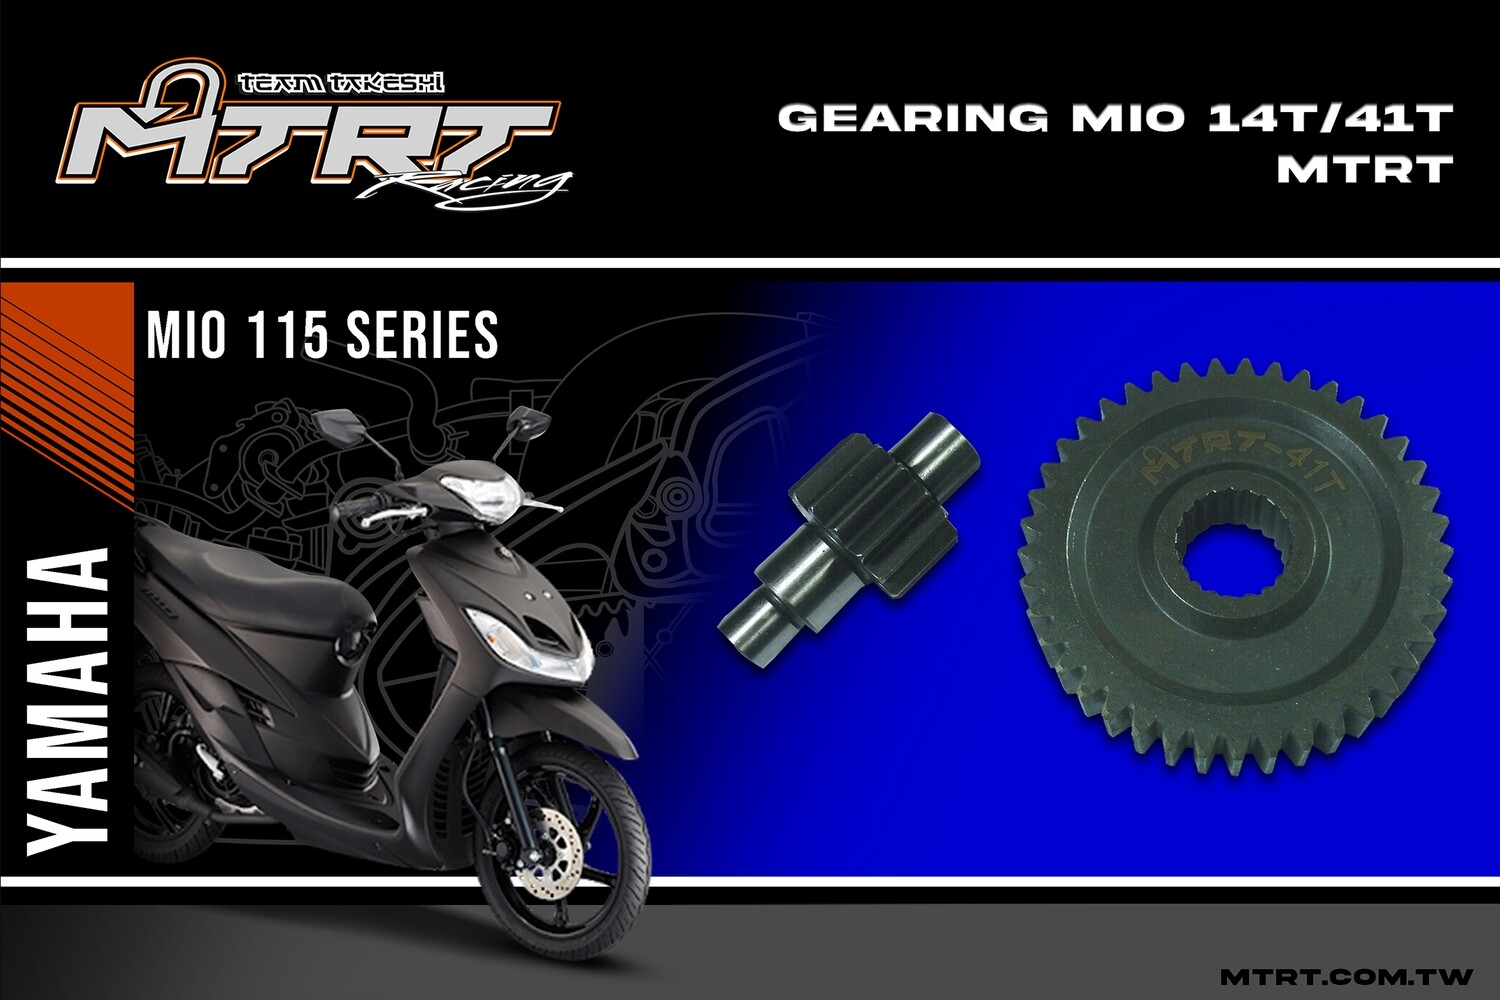 GEARING  MIO  14T/41T  MTRT